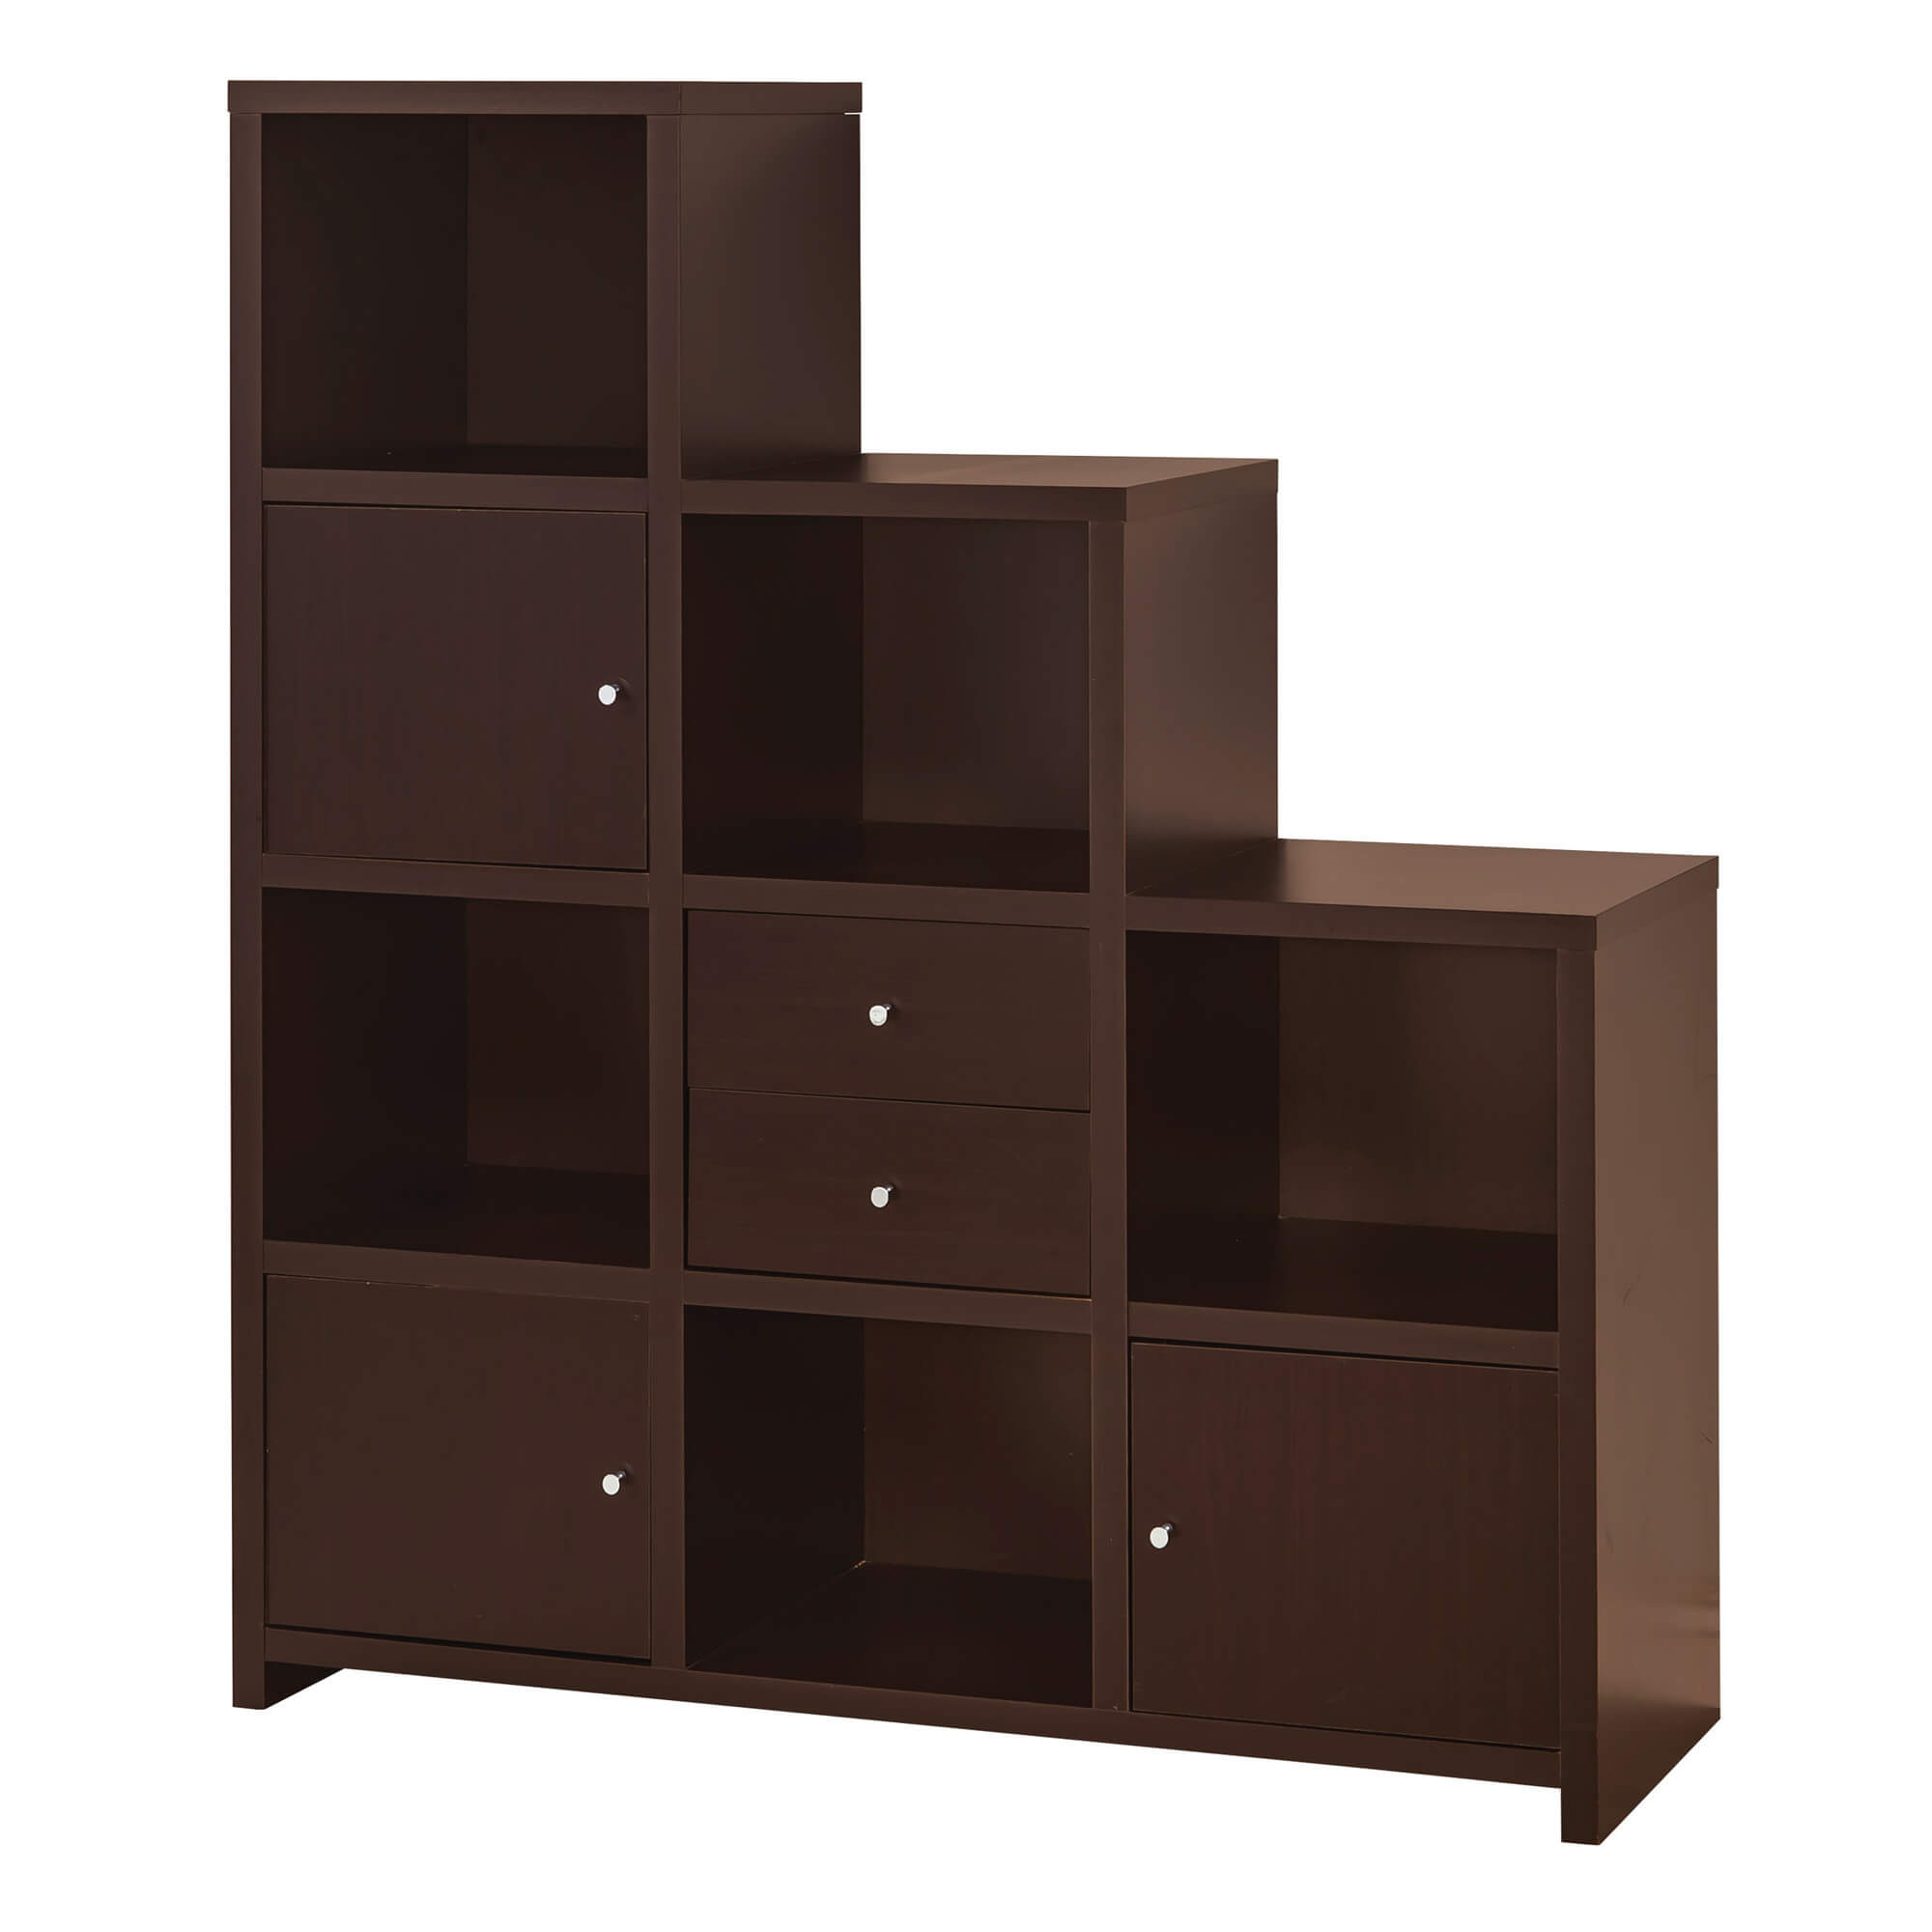 Stairs Shelving Twenty 9 Cube Bookcases Shelves And Storage Options